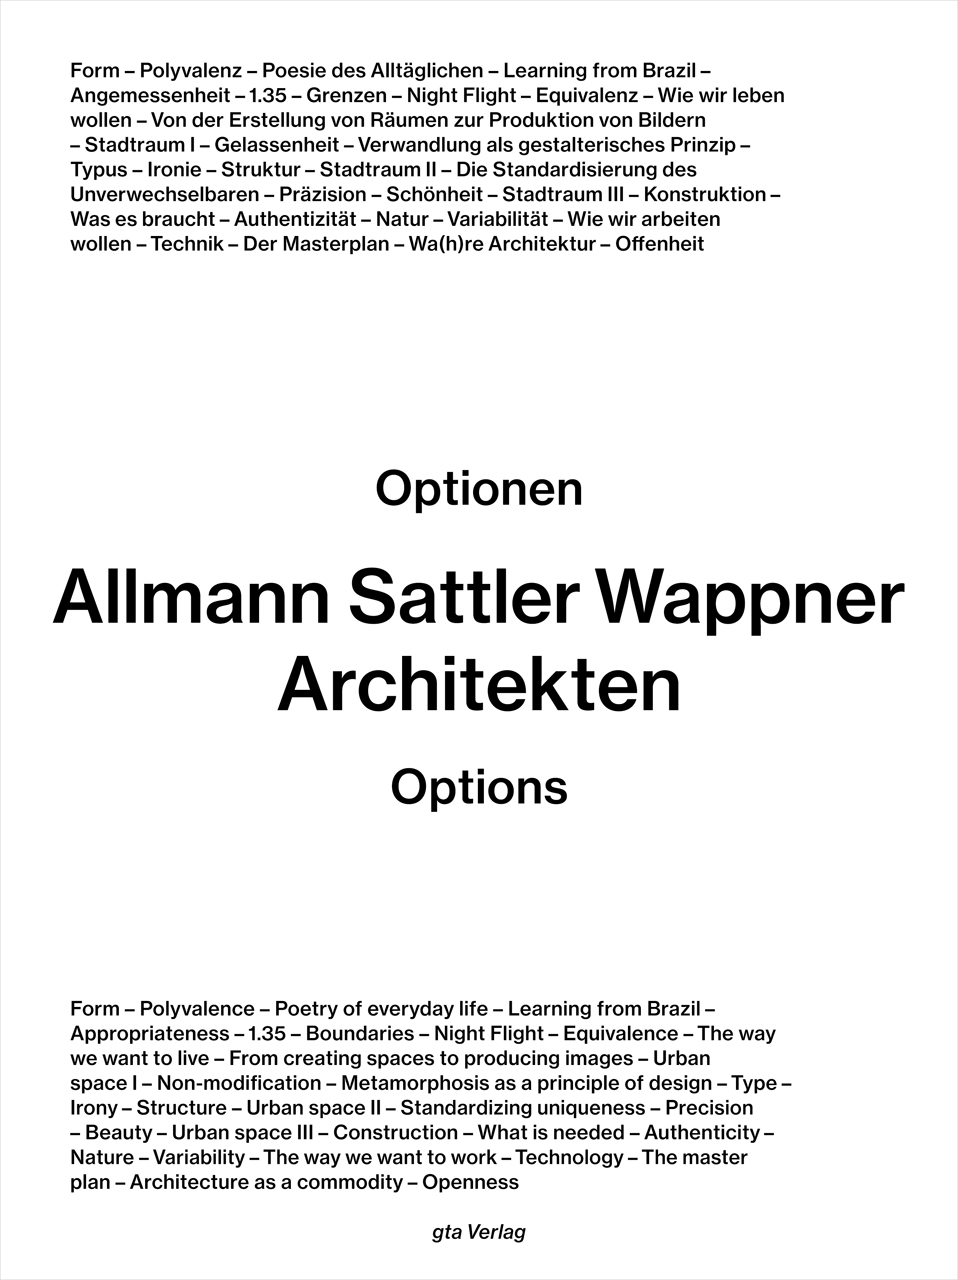 Allmann Sattler Wappner Architekten: Options